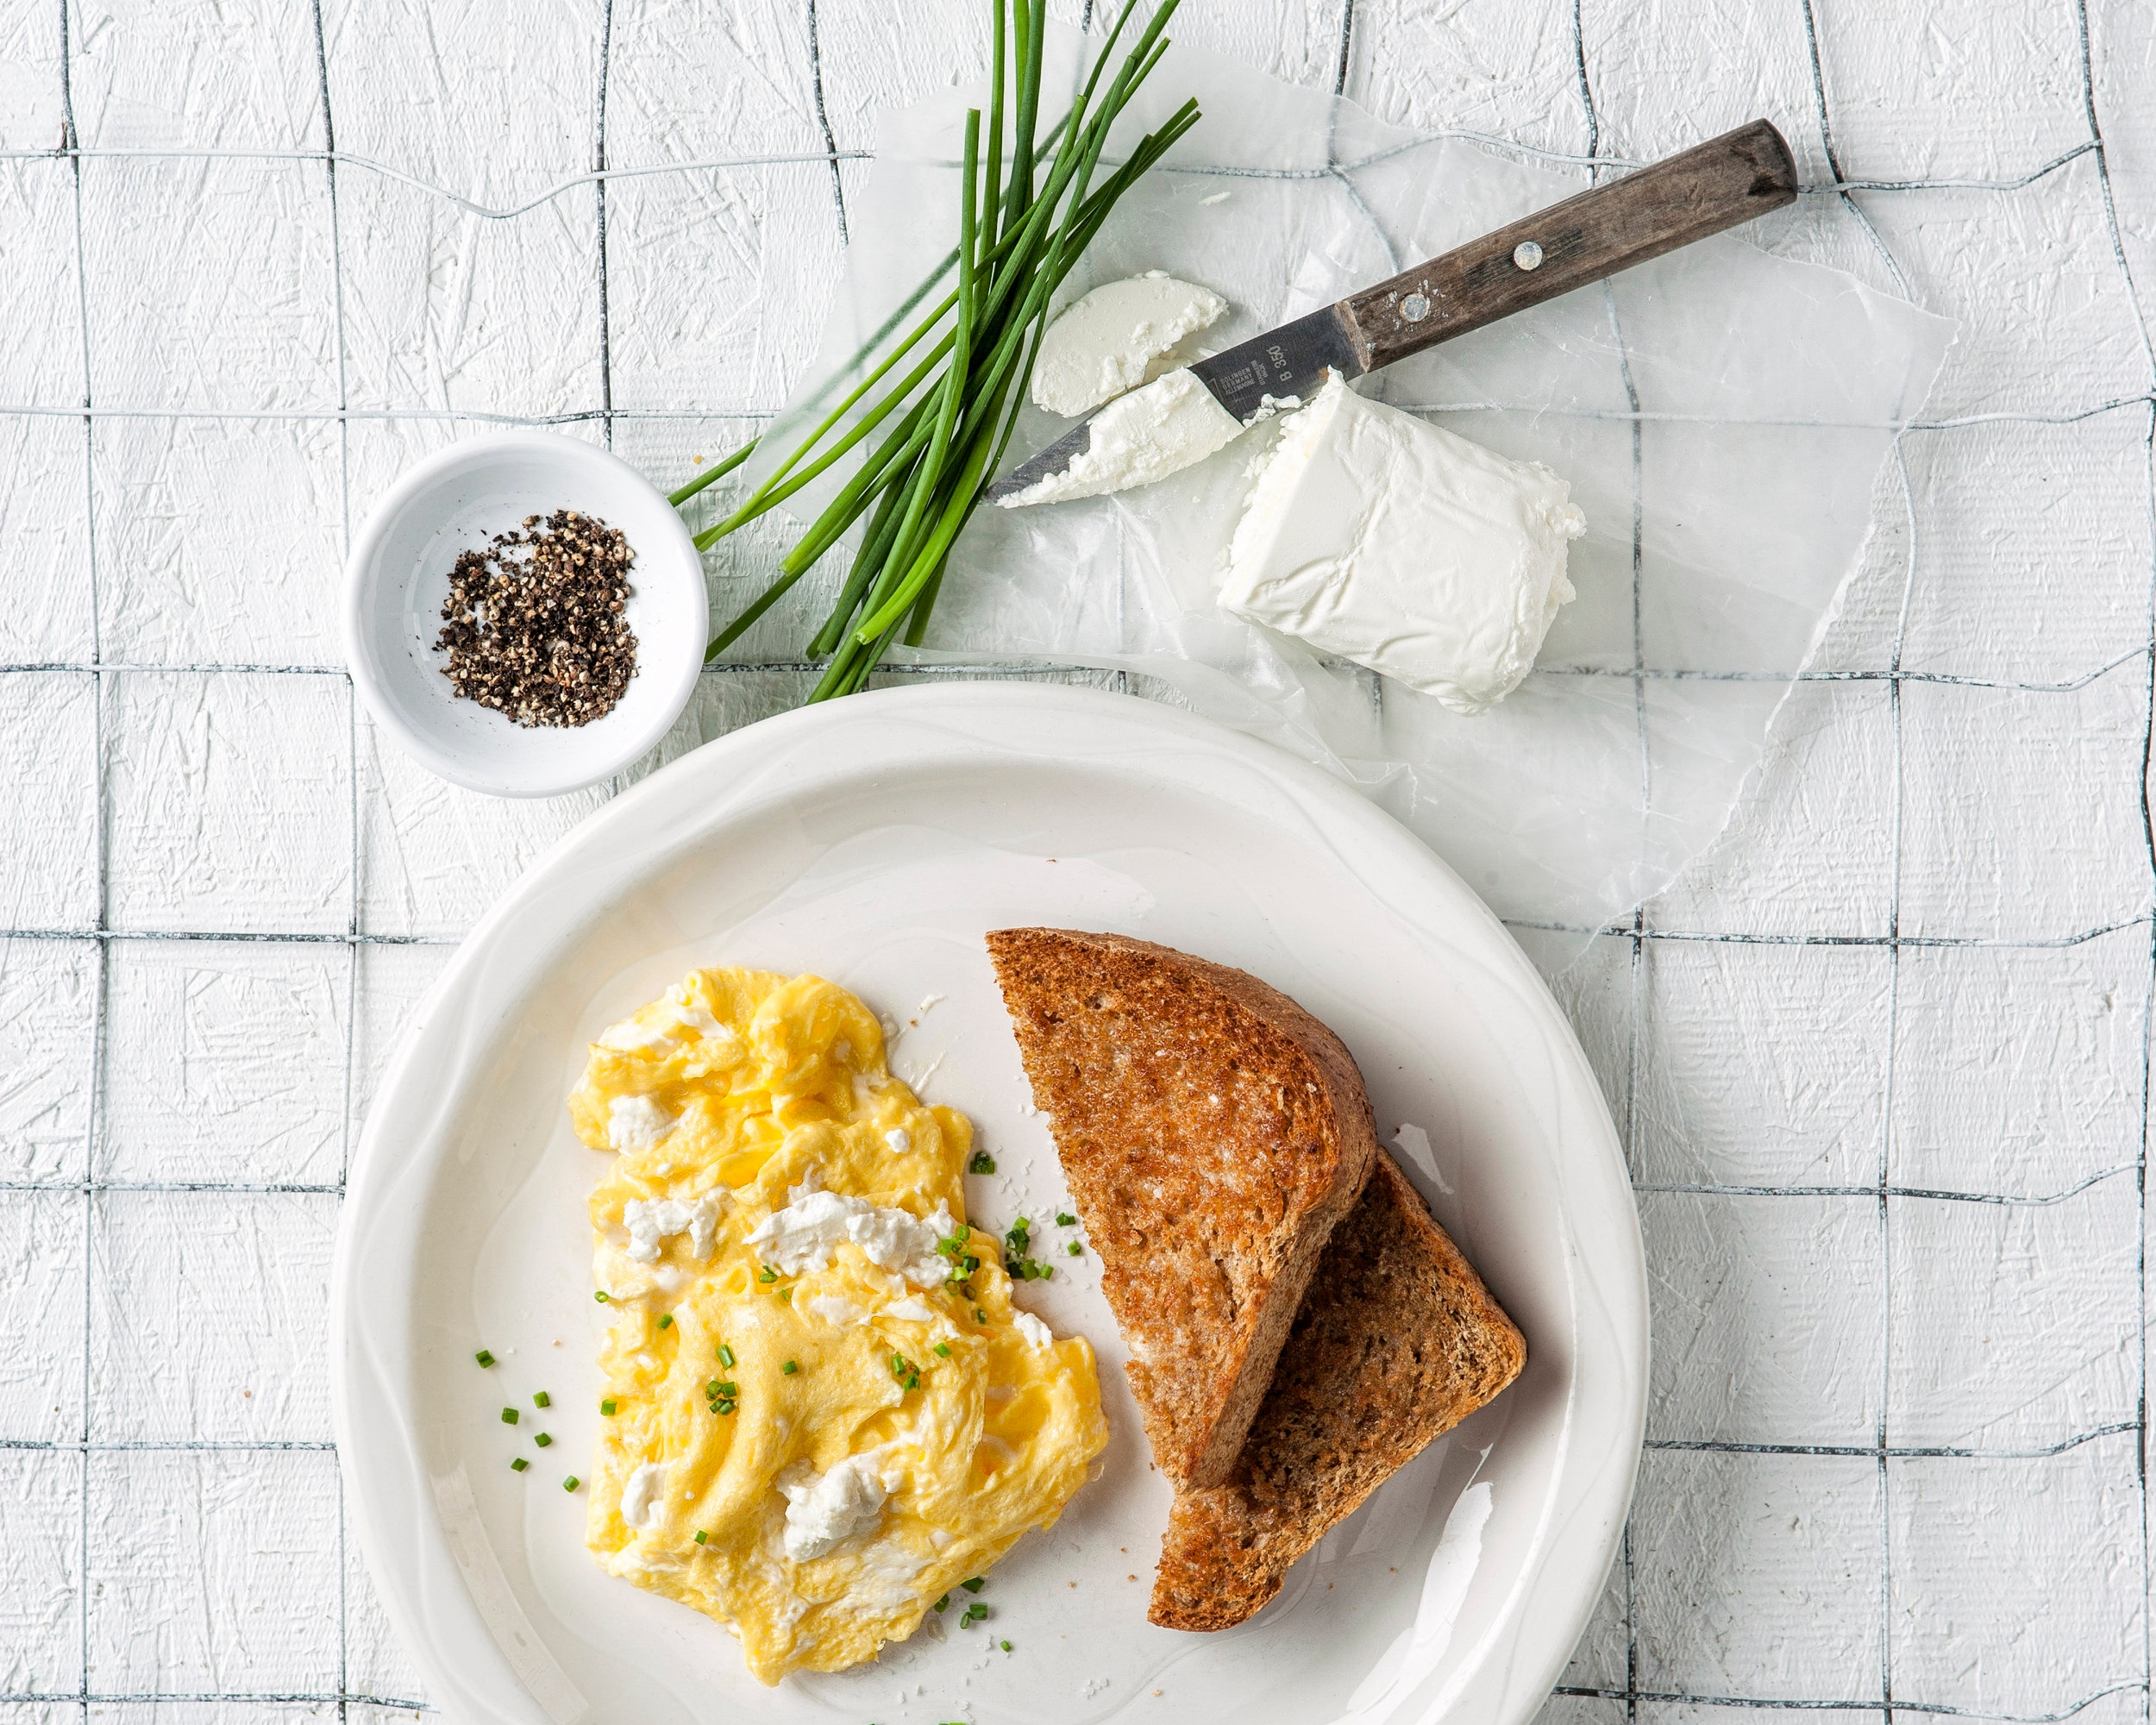 Scrambled eggs with goat cheese and chives.jpg